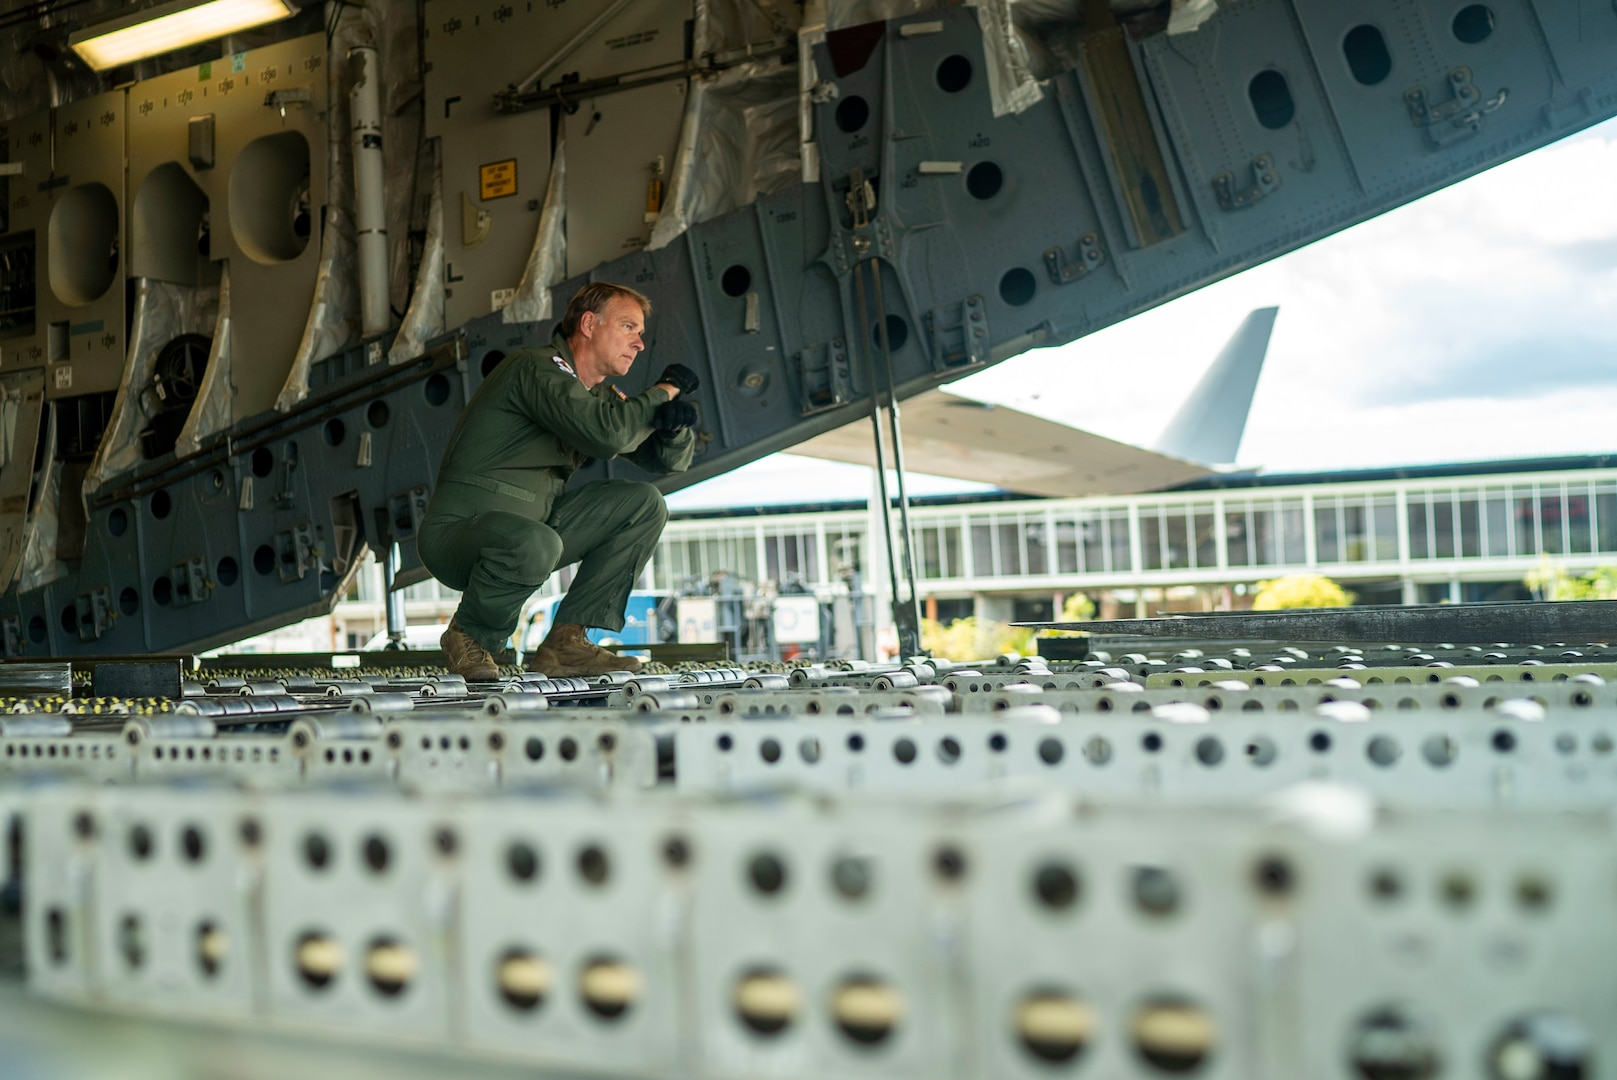 Master Sgt. Don Rix, 701st Airlift Squadron loadmaster, directs a forklift at Johan Adolf Pengel International Airport, Suriname, July 16, 2021.